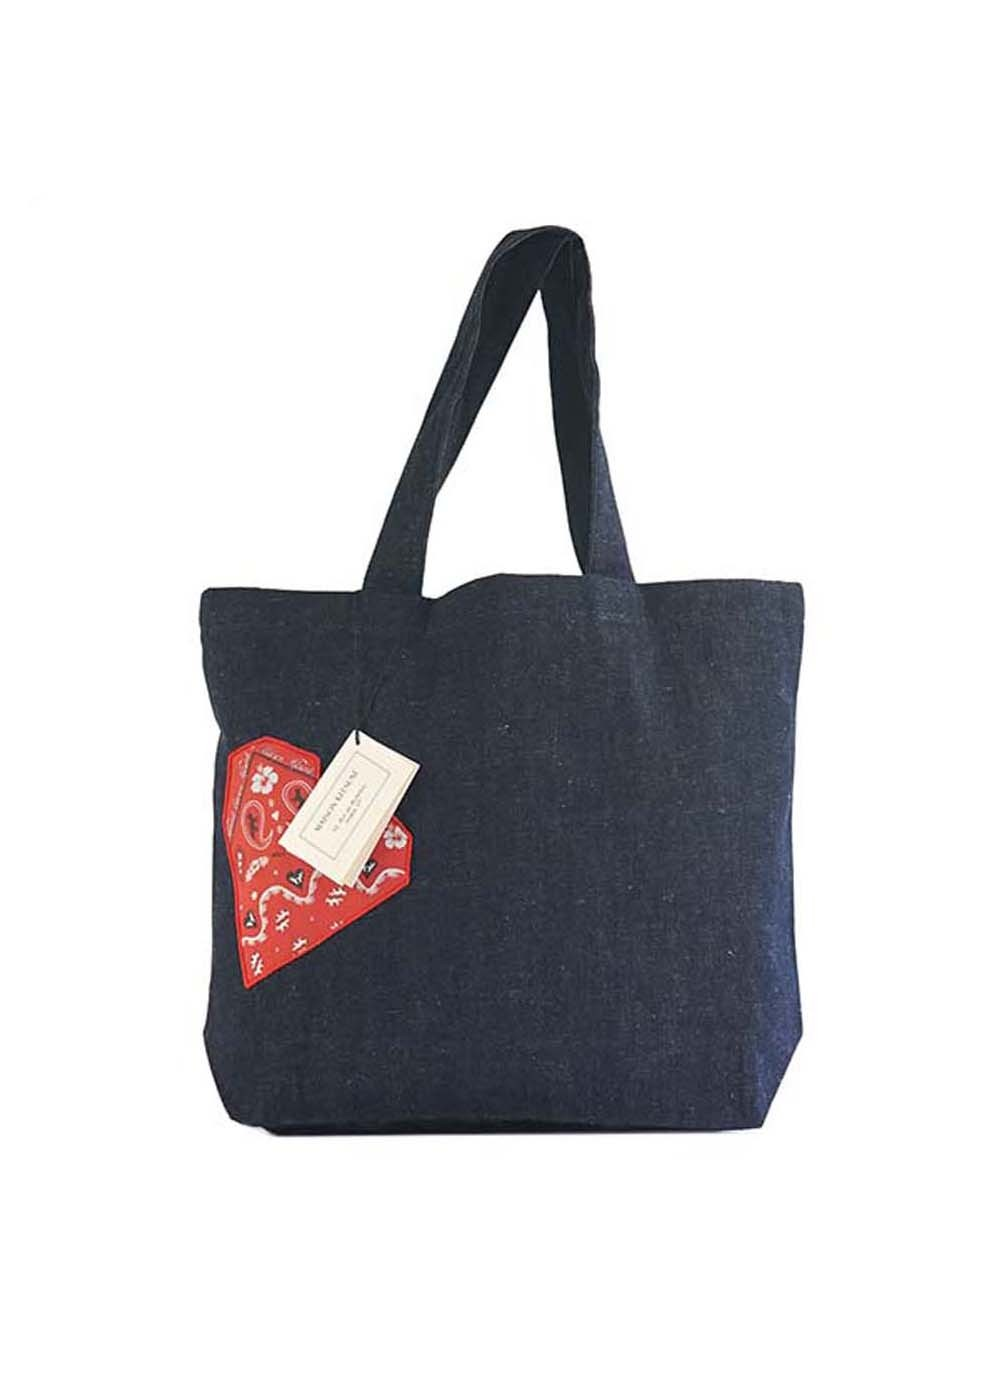 【最大35%OFF】TOTE BAG BANDANA HEART|NAVY MELANGE|トートバッグ|MAISON KITSUNE(C)